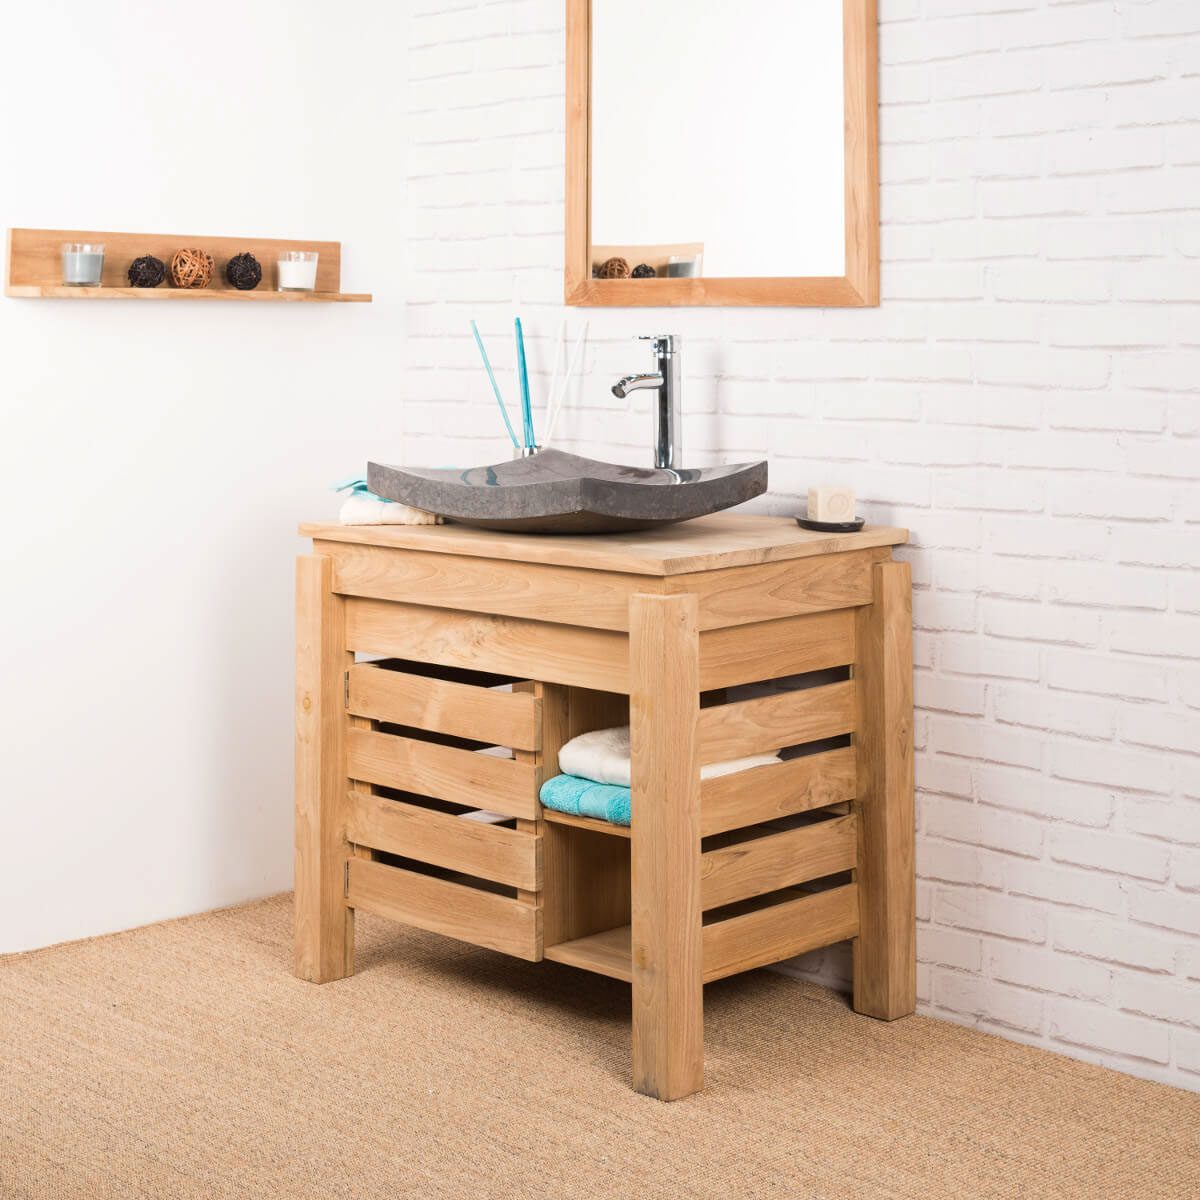 Meuble sous vasque simple vasque en bois teck massif zen rectangle naturel l 85 cm - Meuble salle de bain coin ...